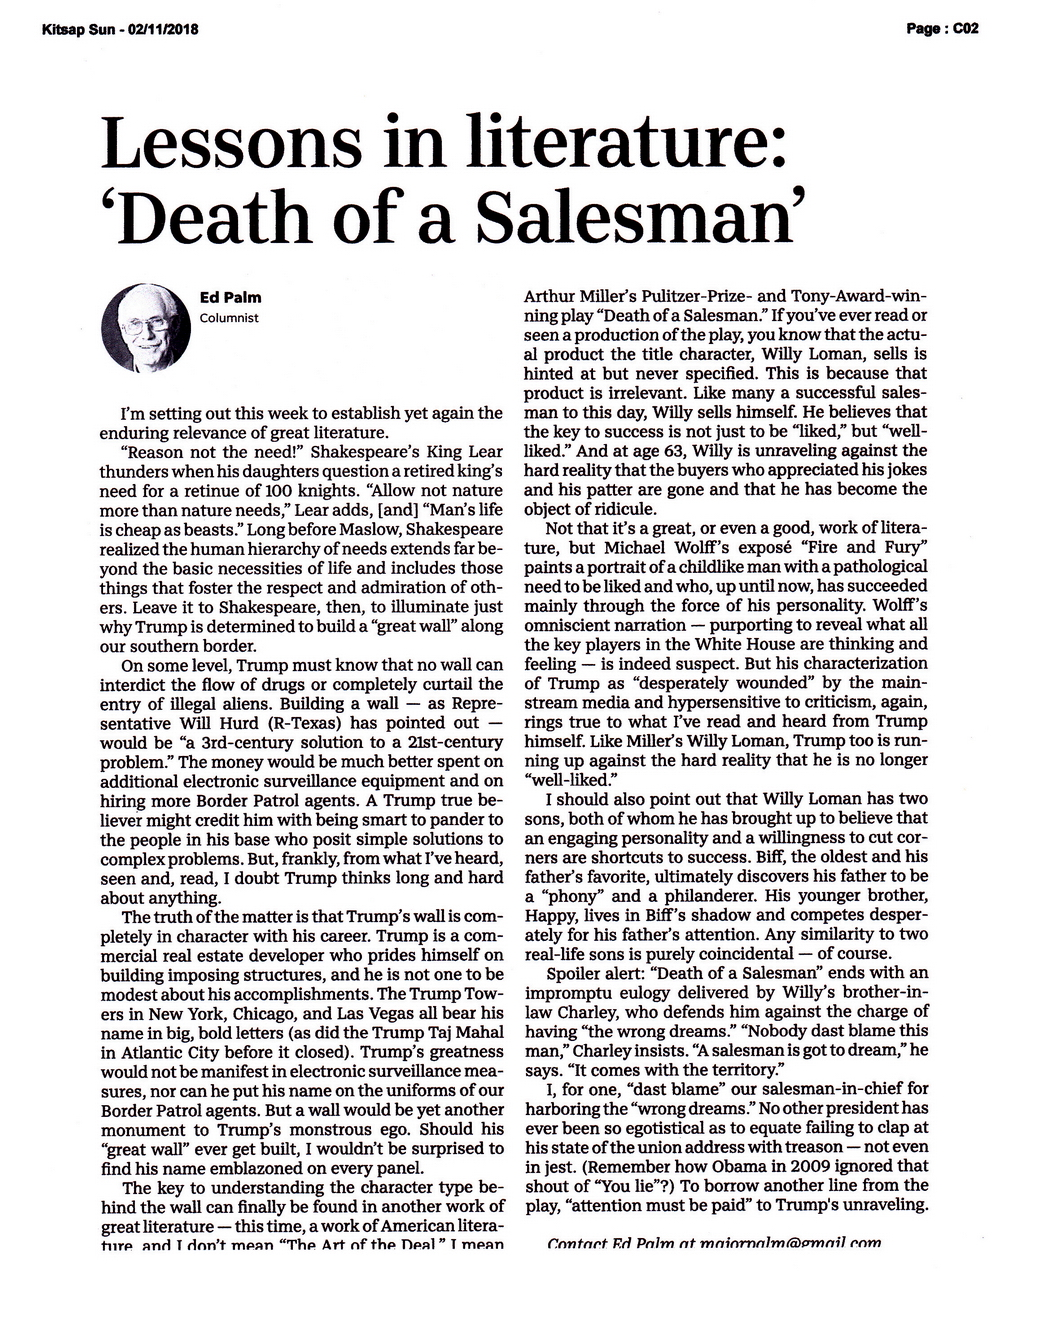 death of a salesman critical insights Critical appreciation of death of a salesman by arthur miller listcovers all the crucial plot points of death of a salesmancritical insights: death.